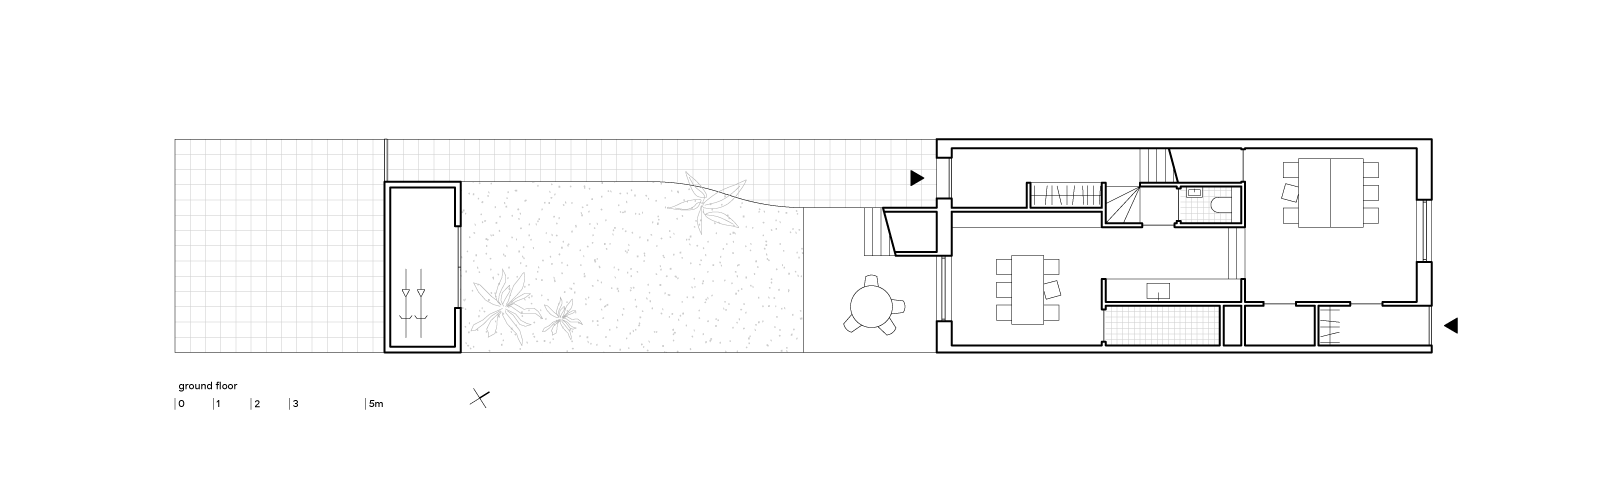 blue house by BETA ground floor plan Evert Klinkenberg Auguste Gus van Oppen